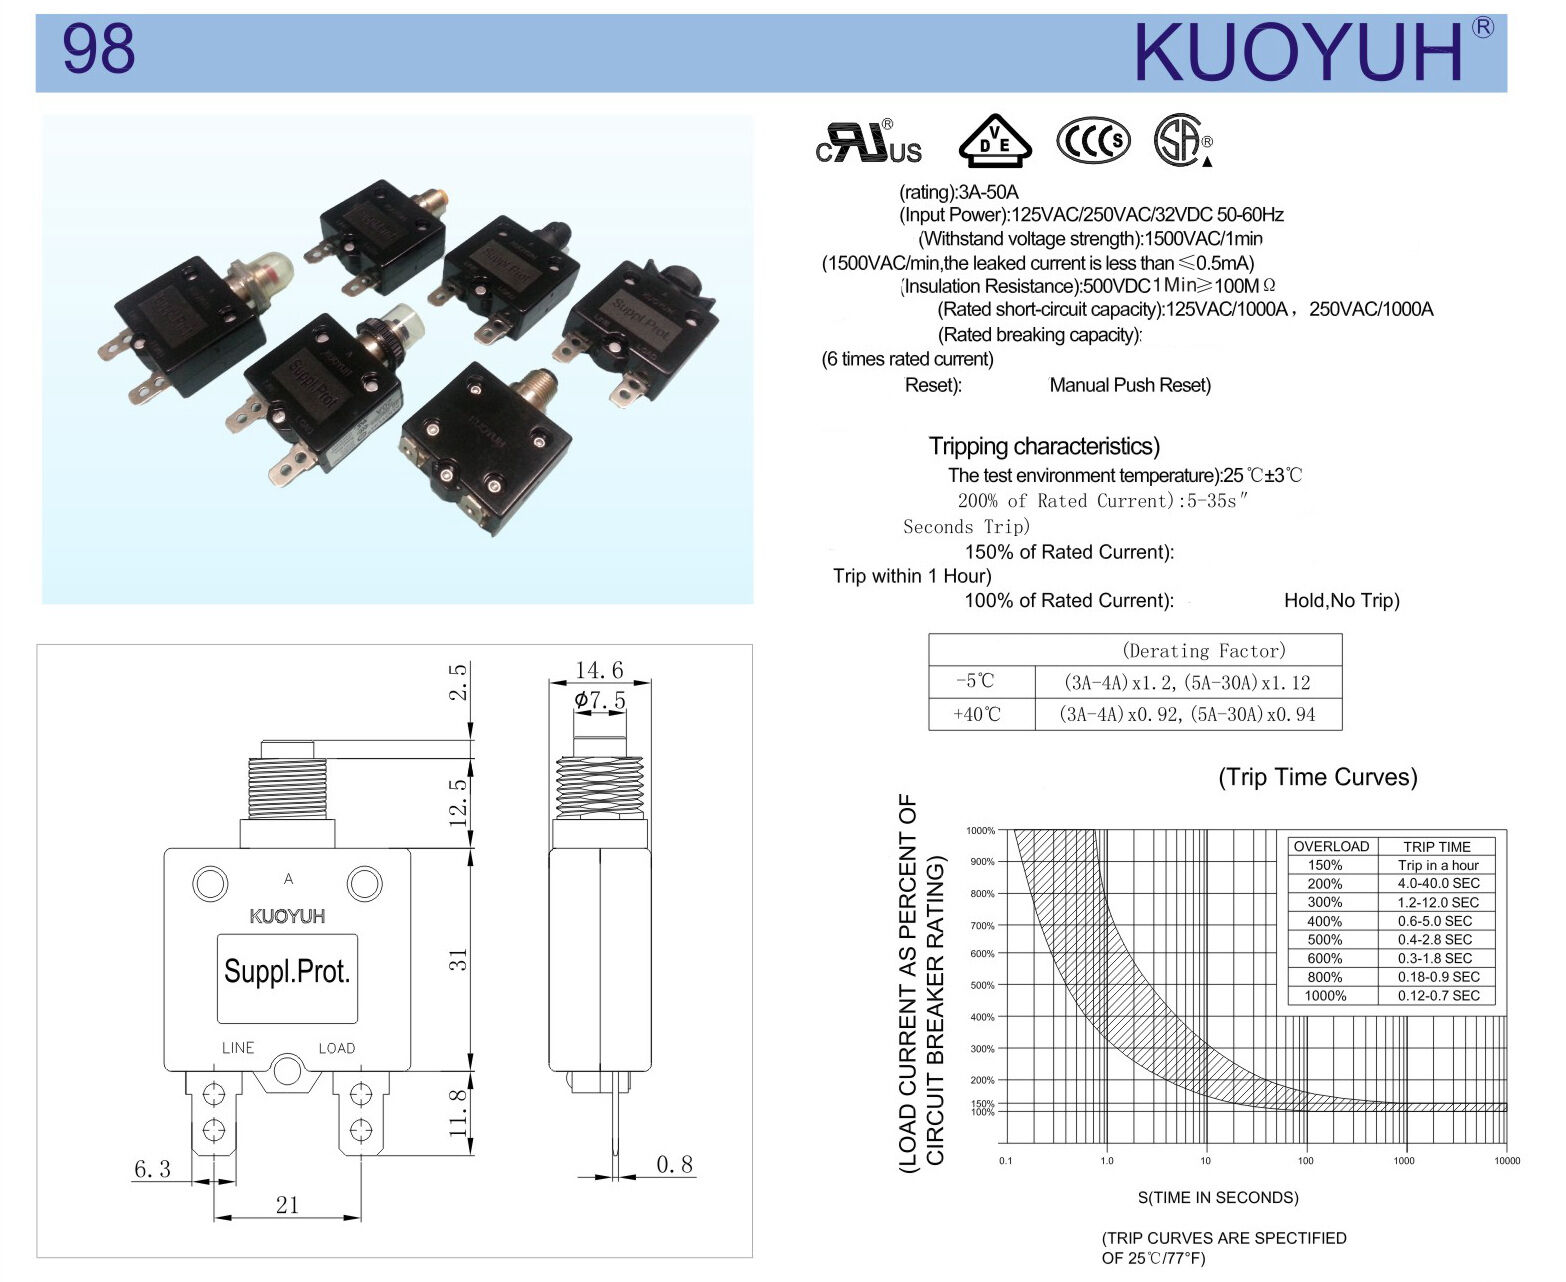 Thermal Overload Circuit Breaker Kuoyuh 98 Series 30a 125 250vac Ebay Afci Wiring Diagram Norton Secured Powered By Verisign